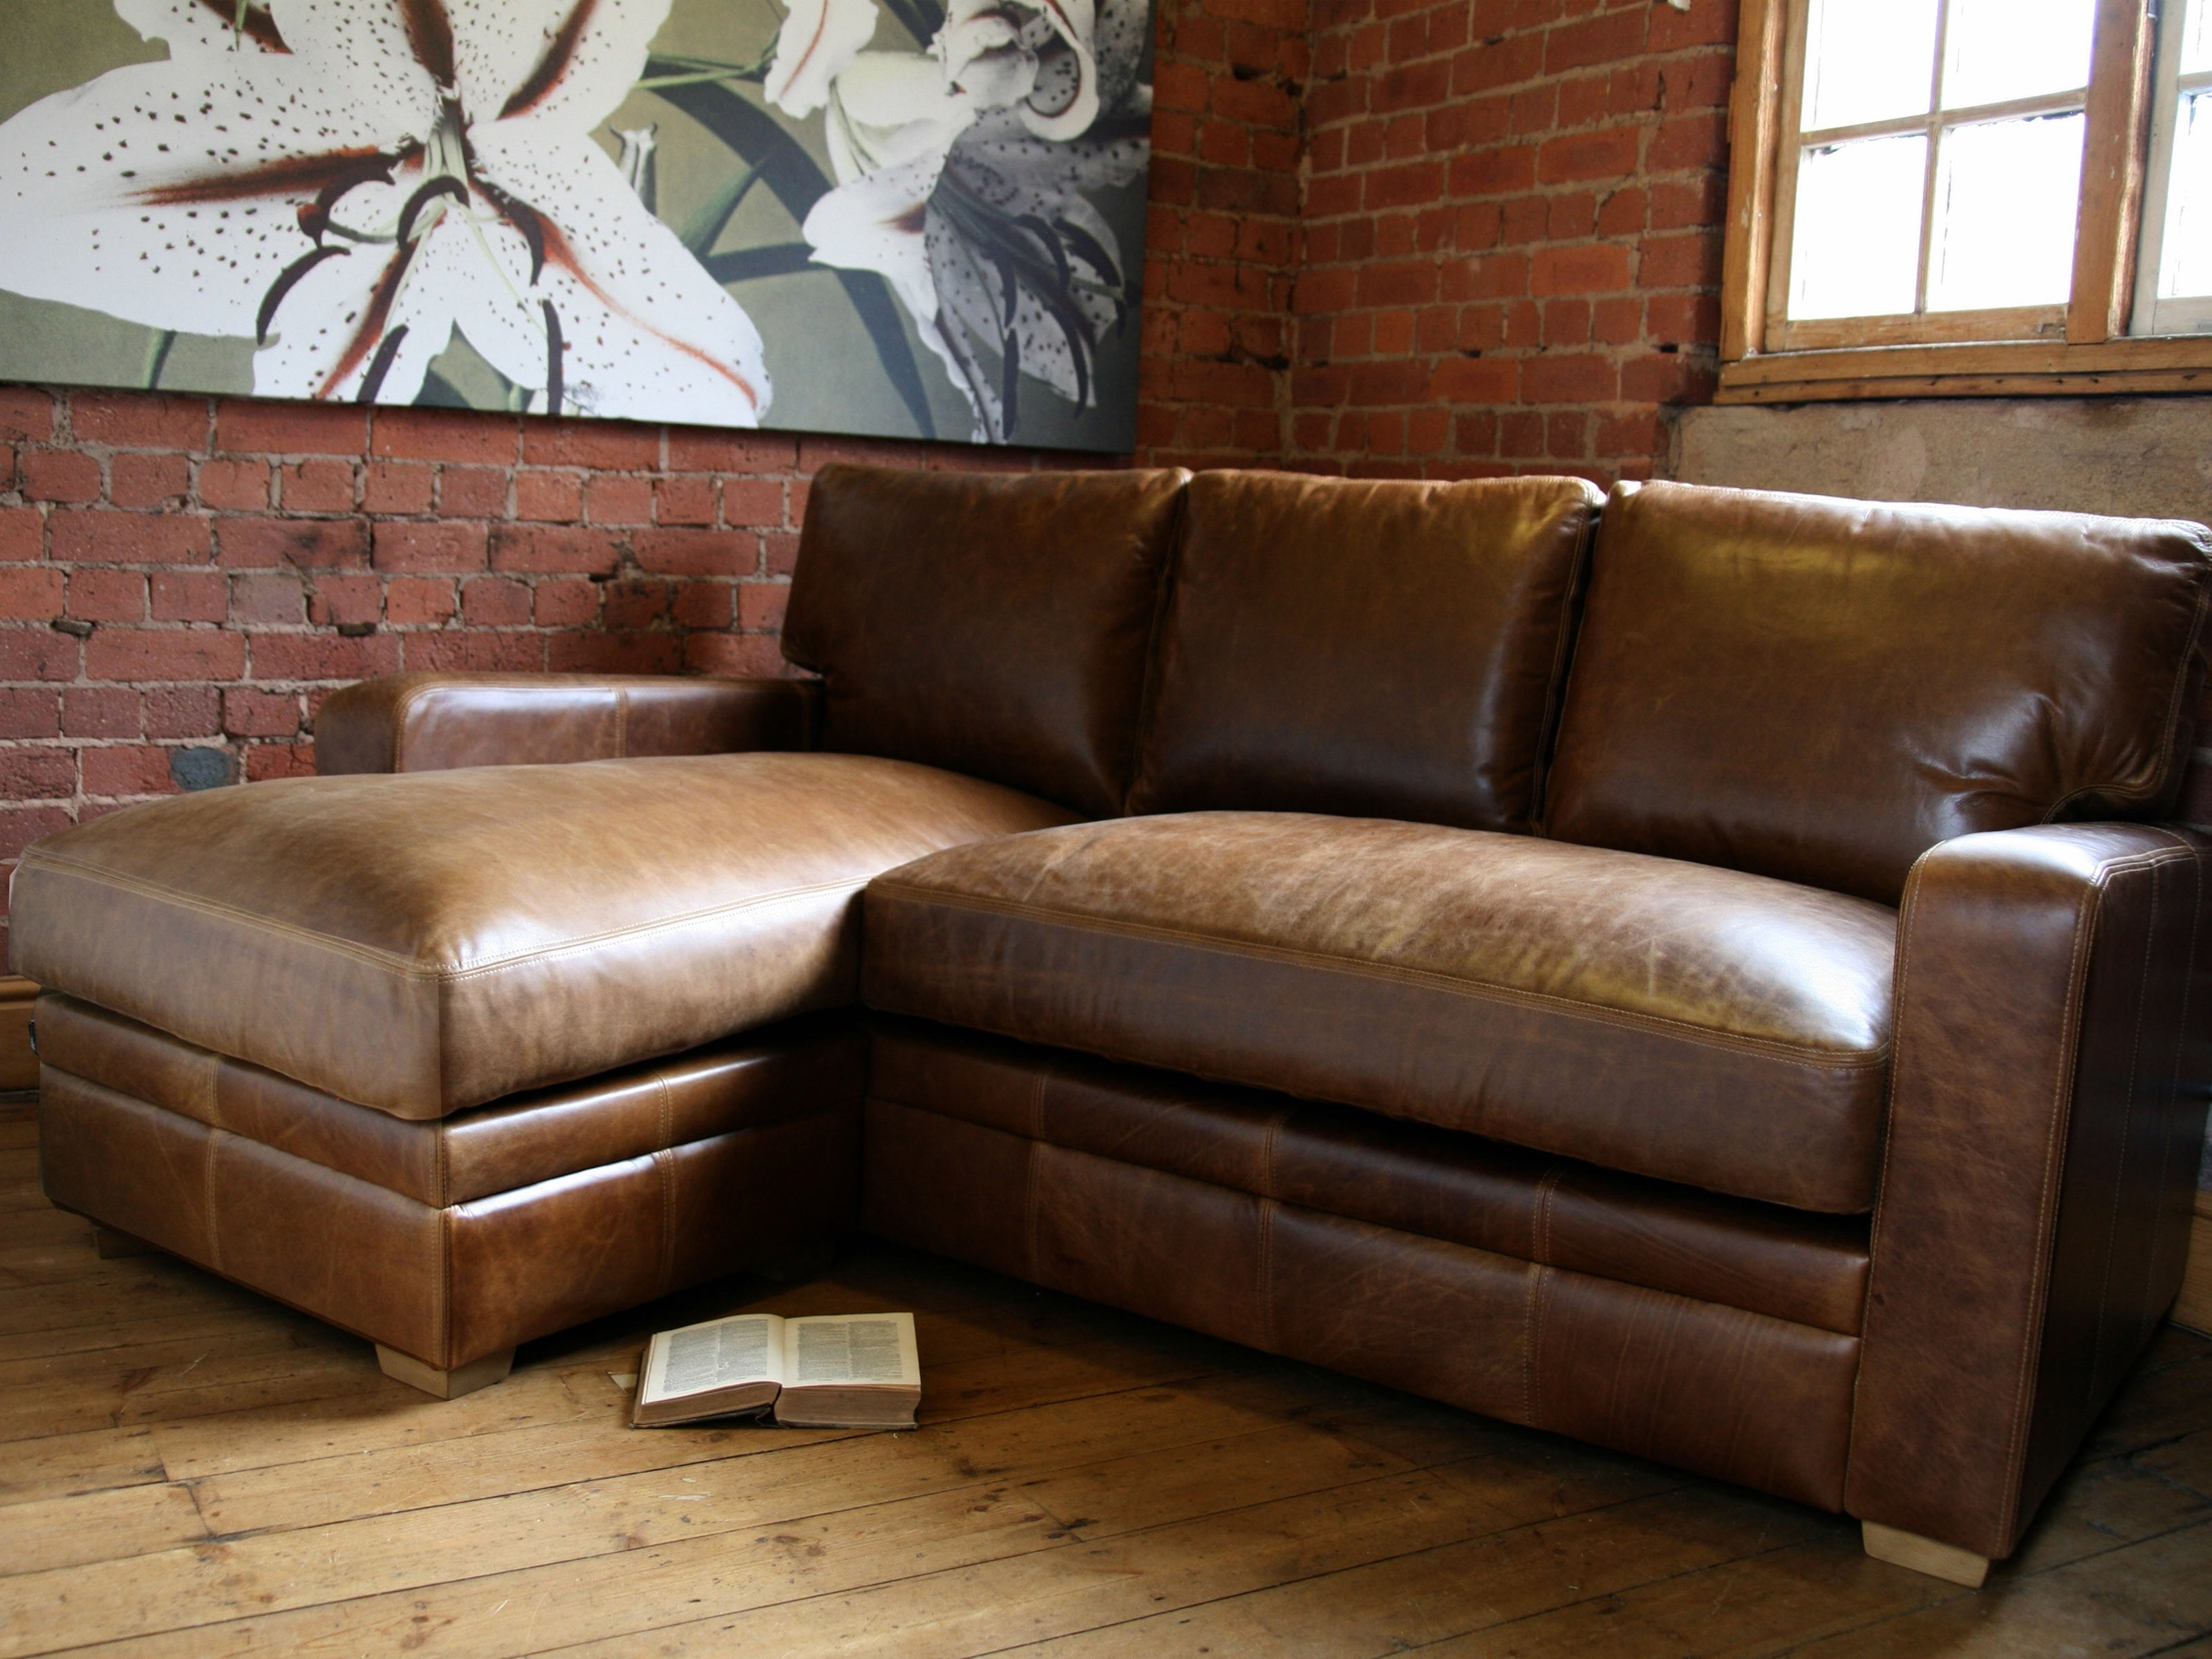 Most Popular Brown Leather Sectionals With Chaise With Regard To Ashley Furniture Sectional Sofas Sectional Sofas With Recliners (View 8 of 15)